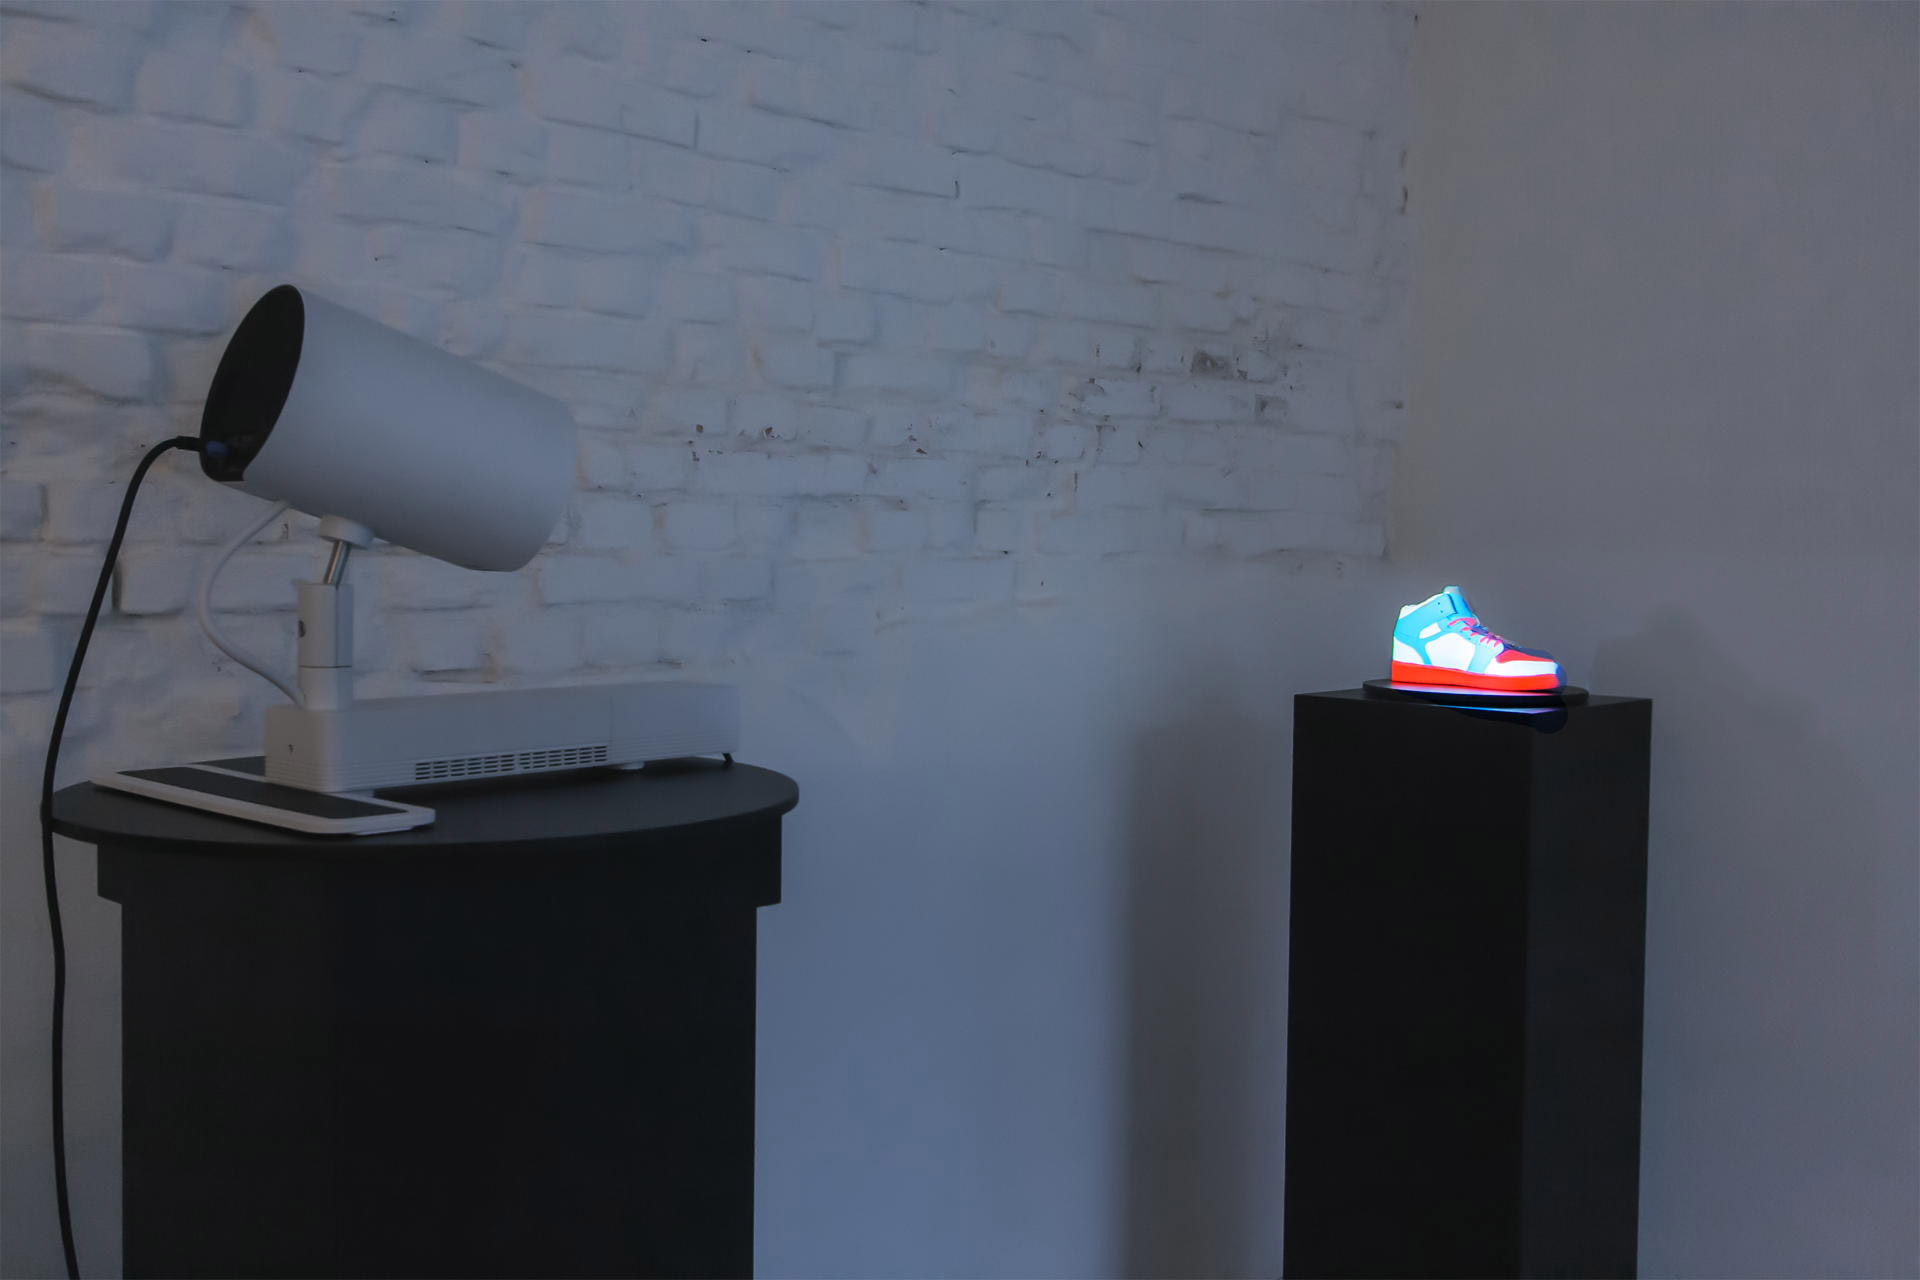 Sneaker_Vase_Projection_pong_li_7